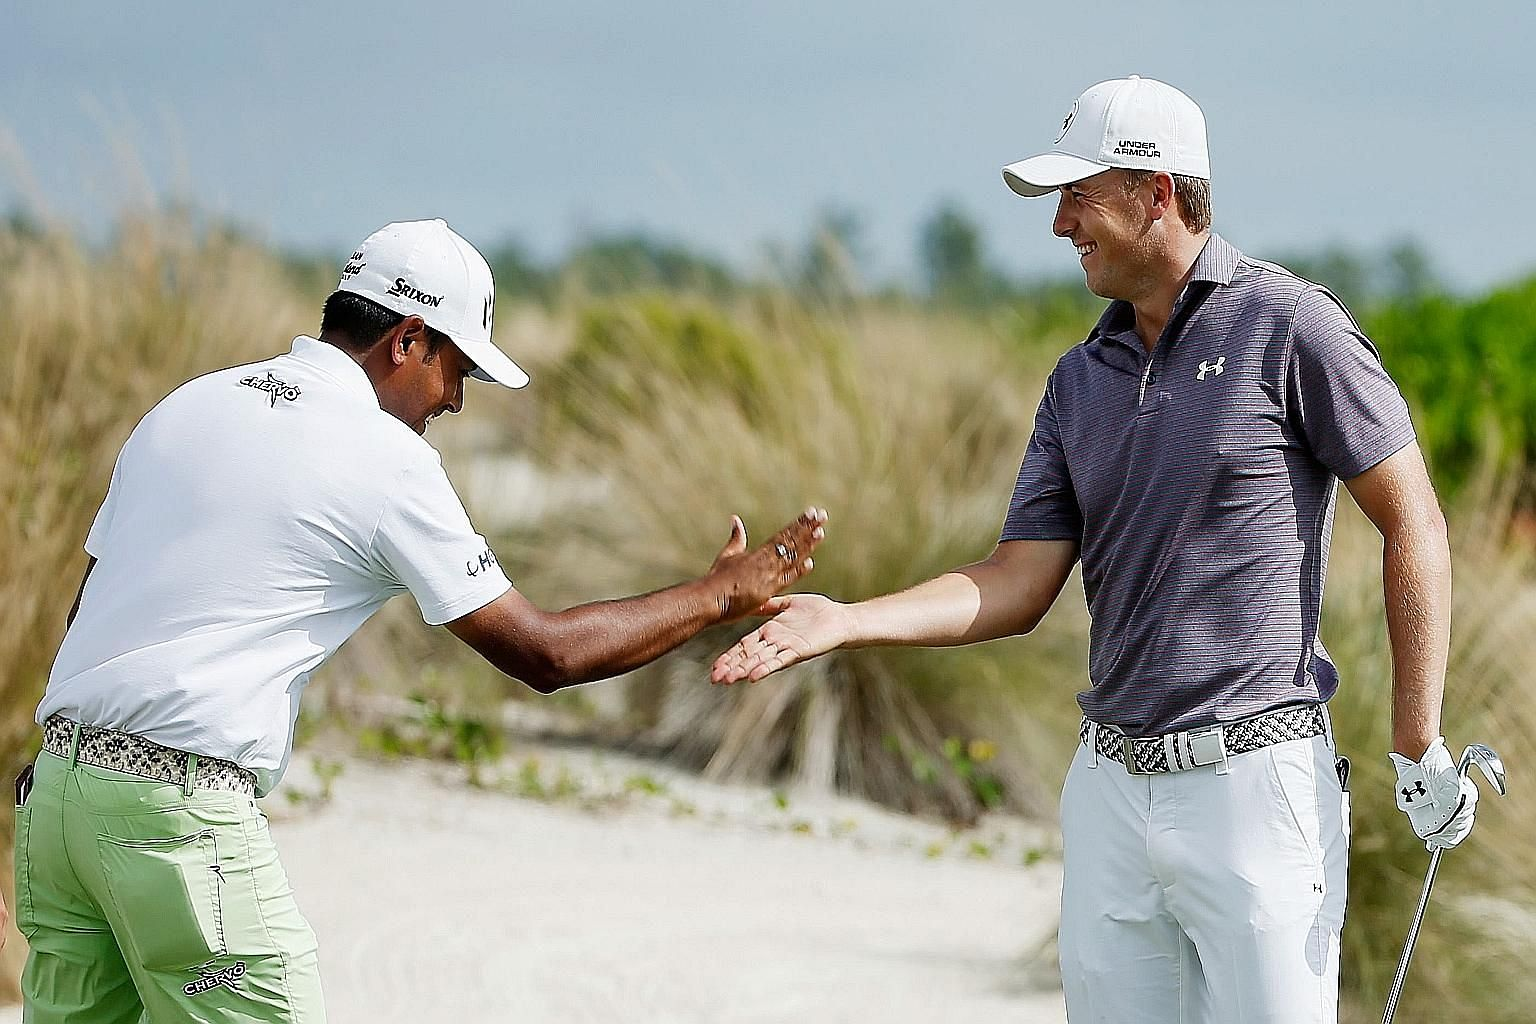 India's Anirban Lahiri (left) shares Jordan Spieth's joy after the defending champion aced the second hole.